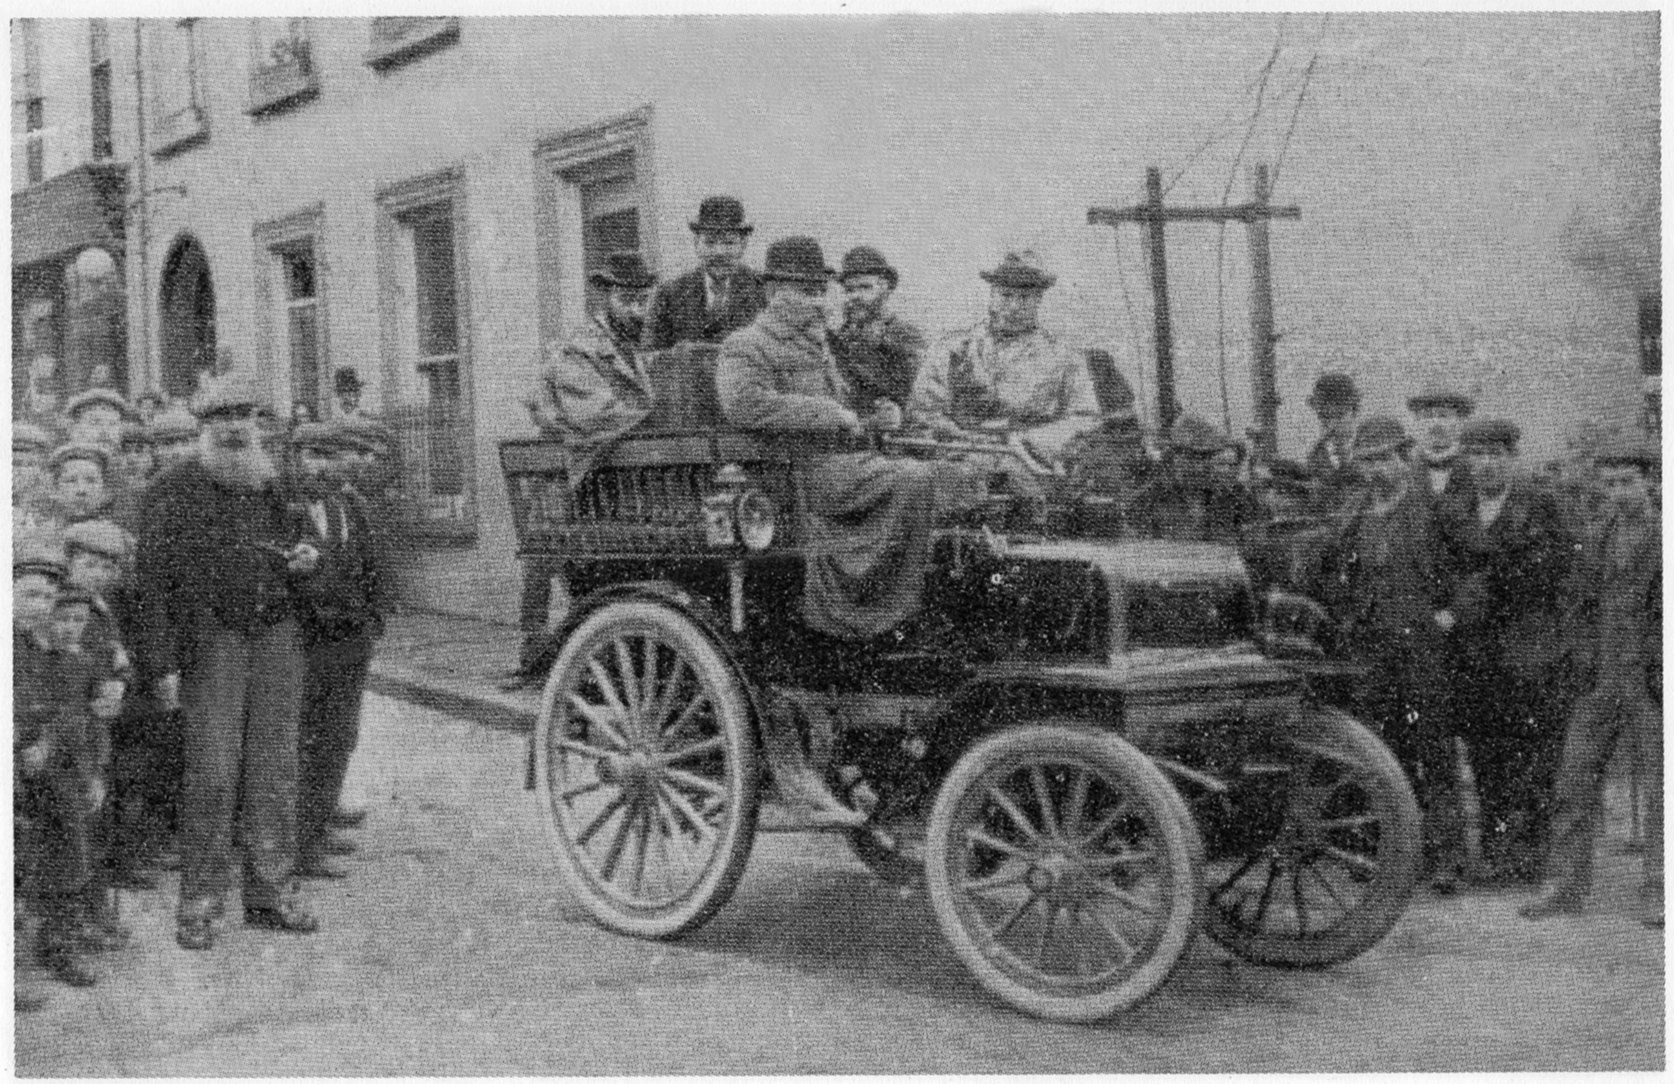 The car is a 1897 Daimler Stirling, one of the first \